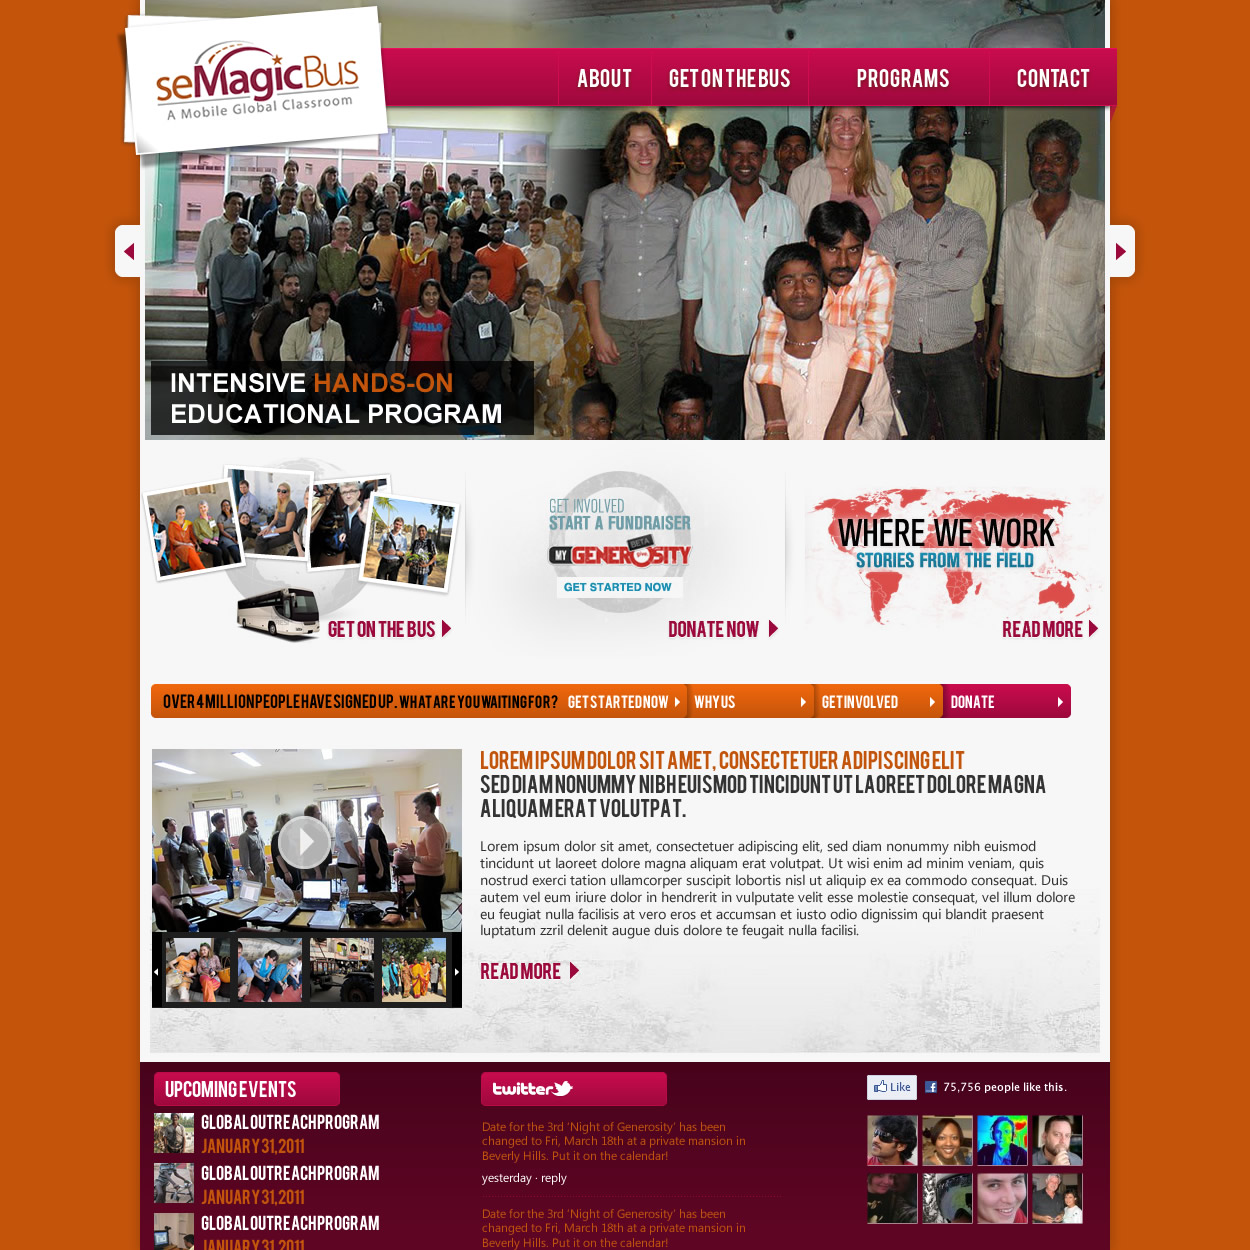 Web Page Design by johngabriel - Entry No. 47 in the Web Page Design Contest seMagicBus Website.